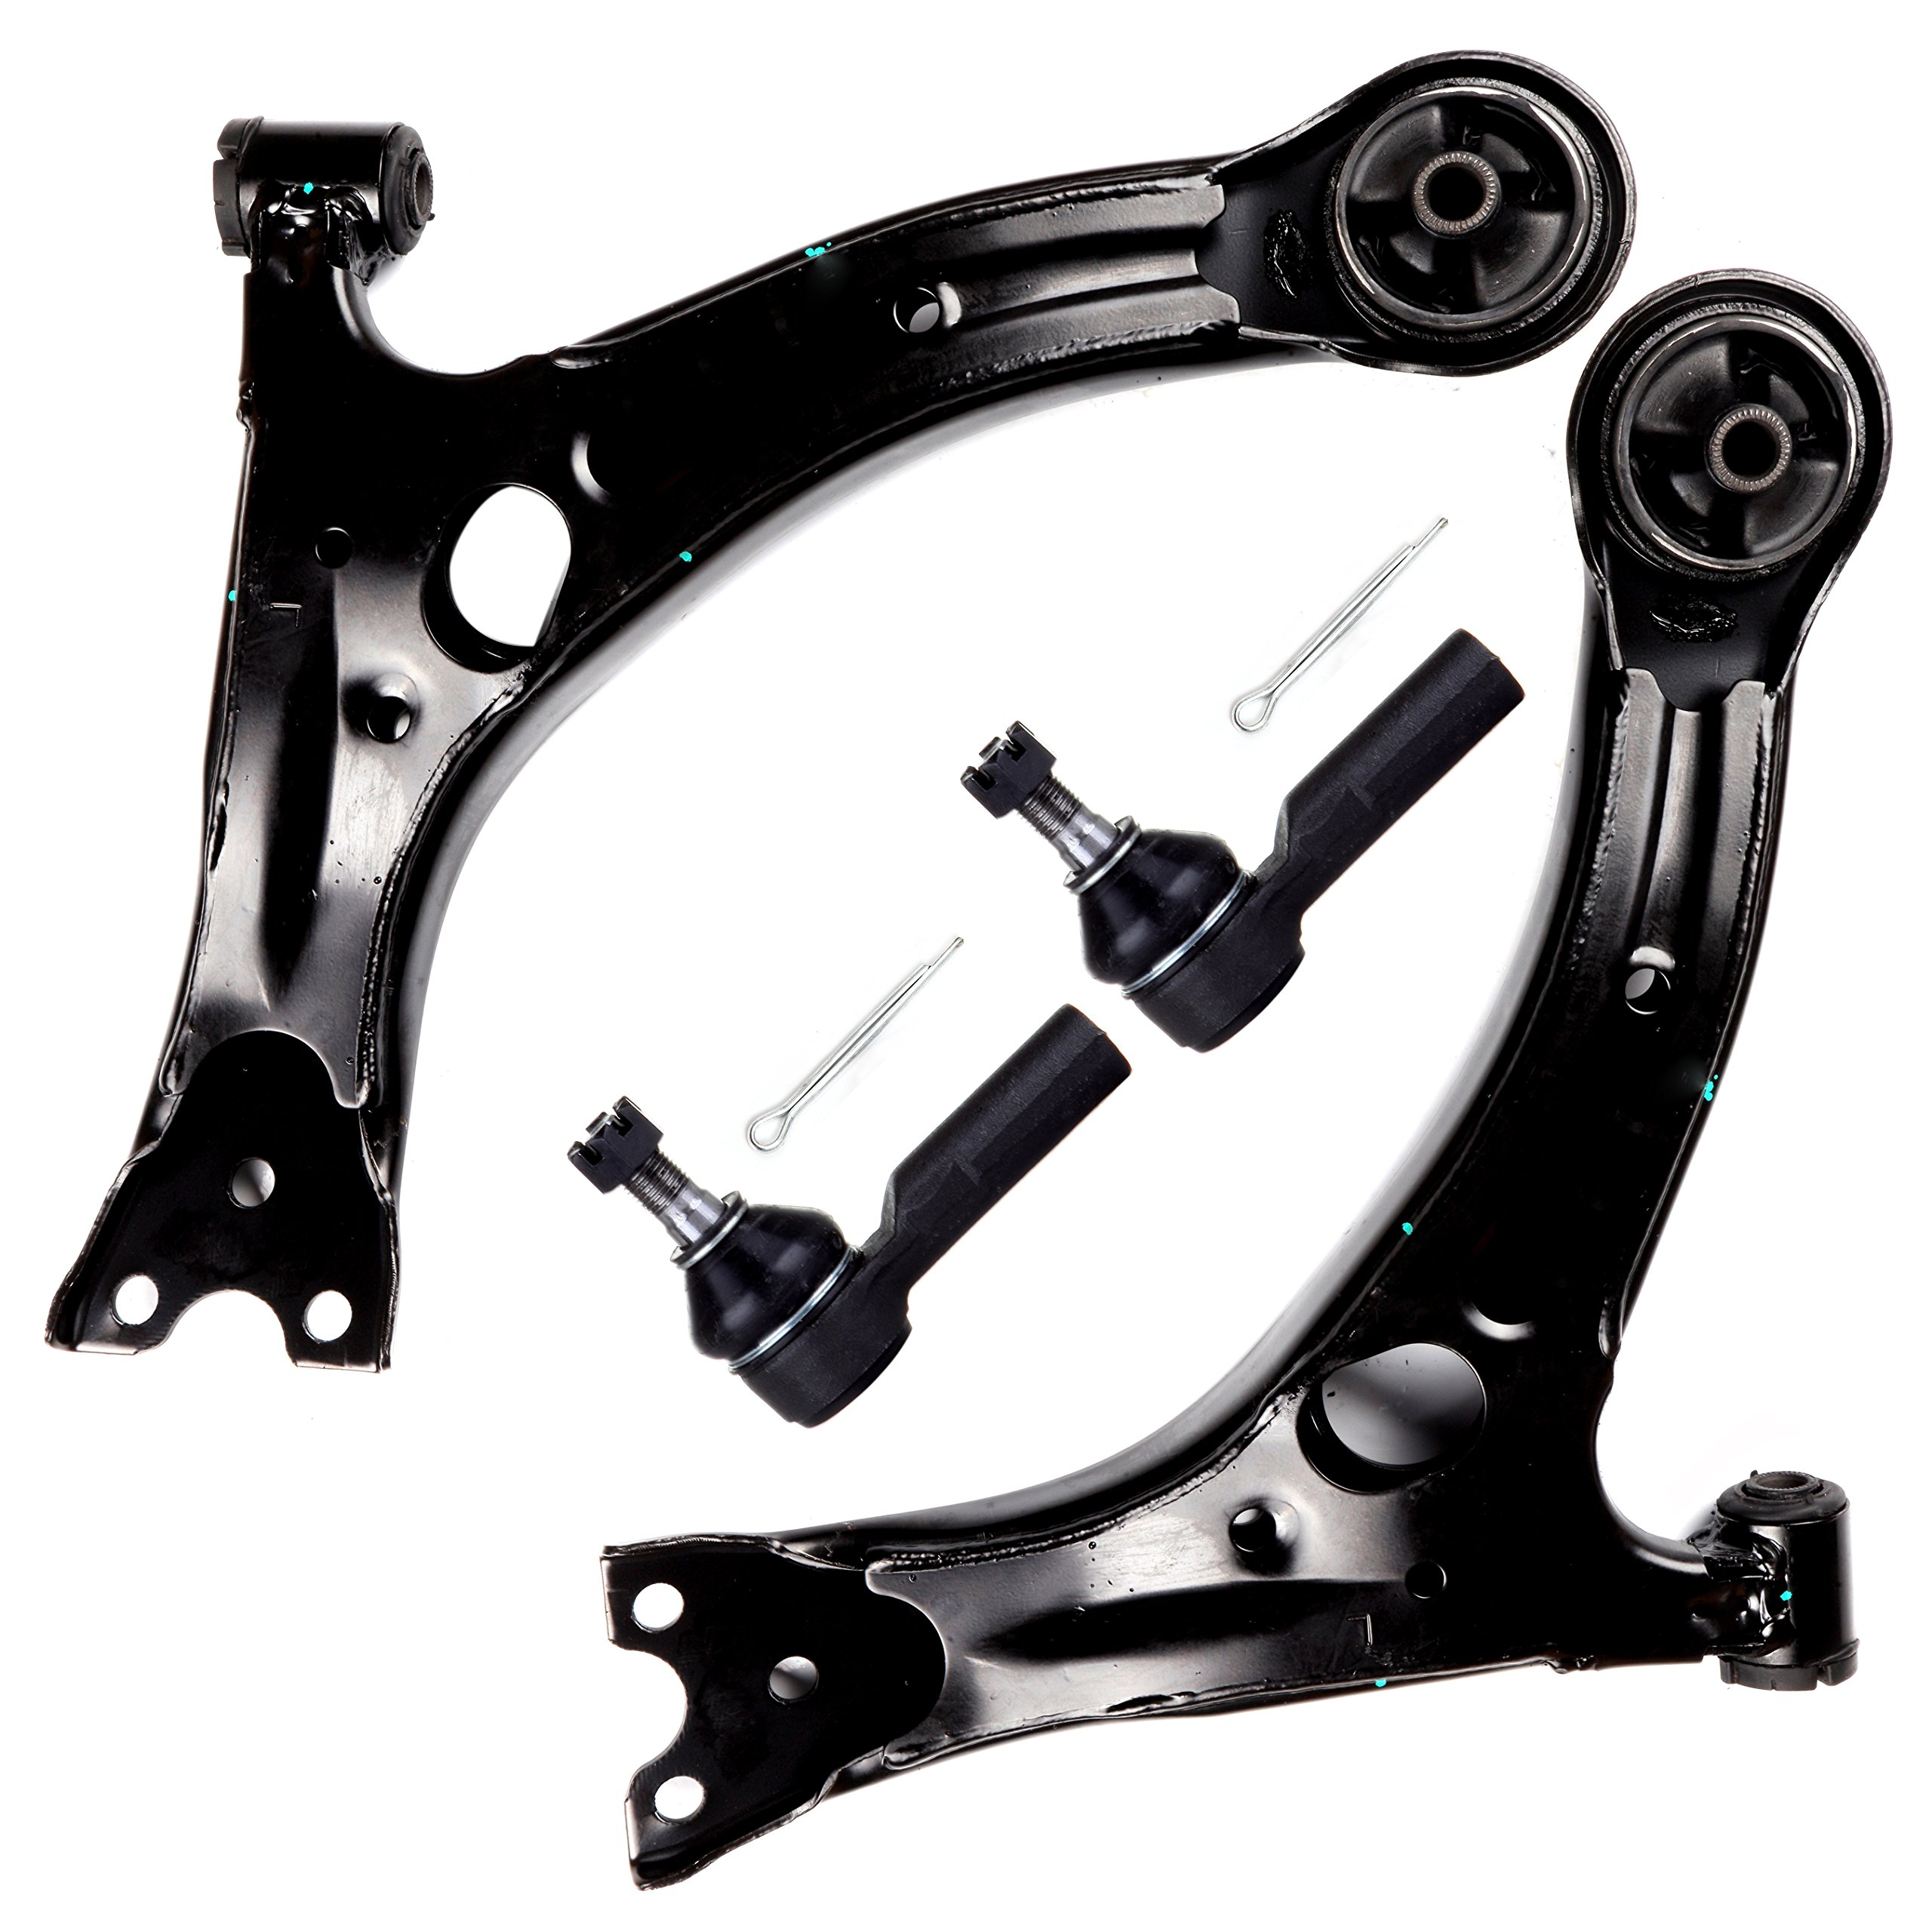 SCITOO 4pcs Suspension Kit 2 Lower Control Arm 2 Outer Tie Rodsfit 2003-2008 Pontiac Vibe 2003-2008 Toyota Matrix ES3713 by SCITOO